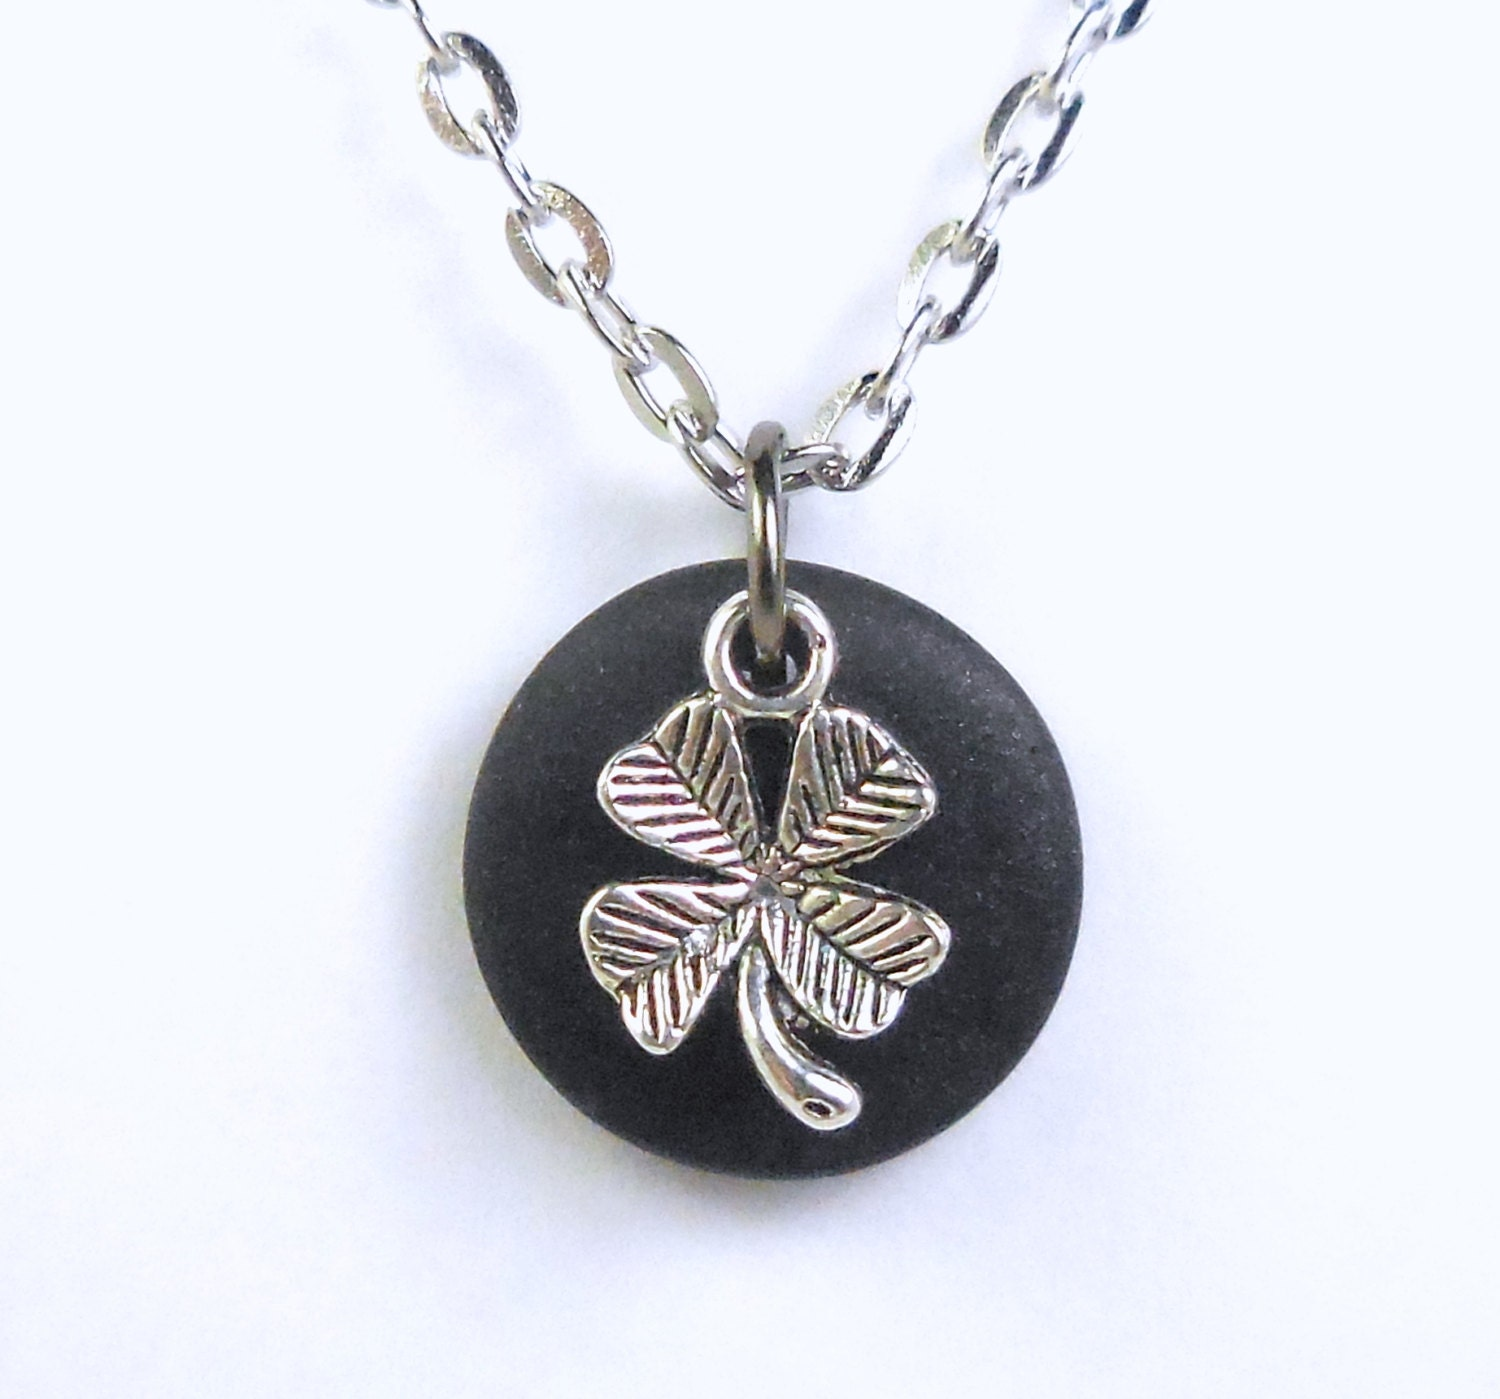 Four Leaf Clover Good Luck Charm Necklace Black Lucky Clover. Fun Jewelry. Aqua Blue Earrings. Chain Pendant. Mens Ring